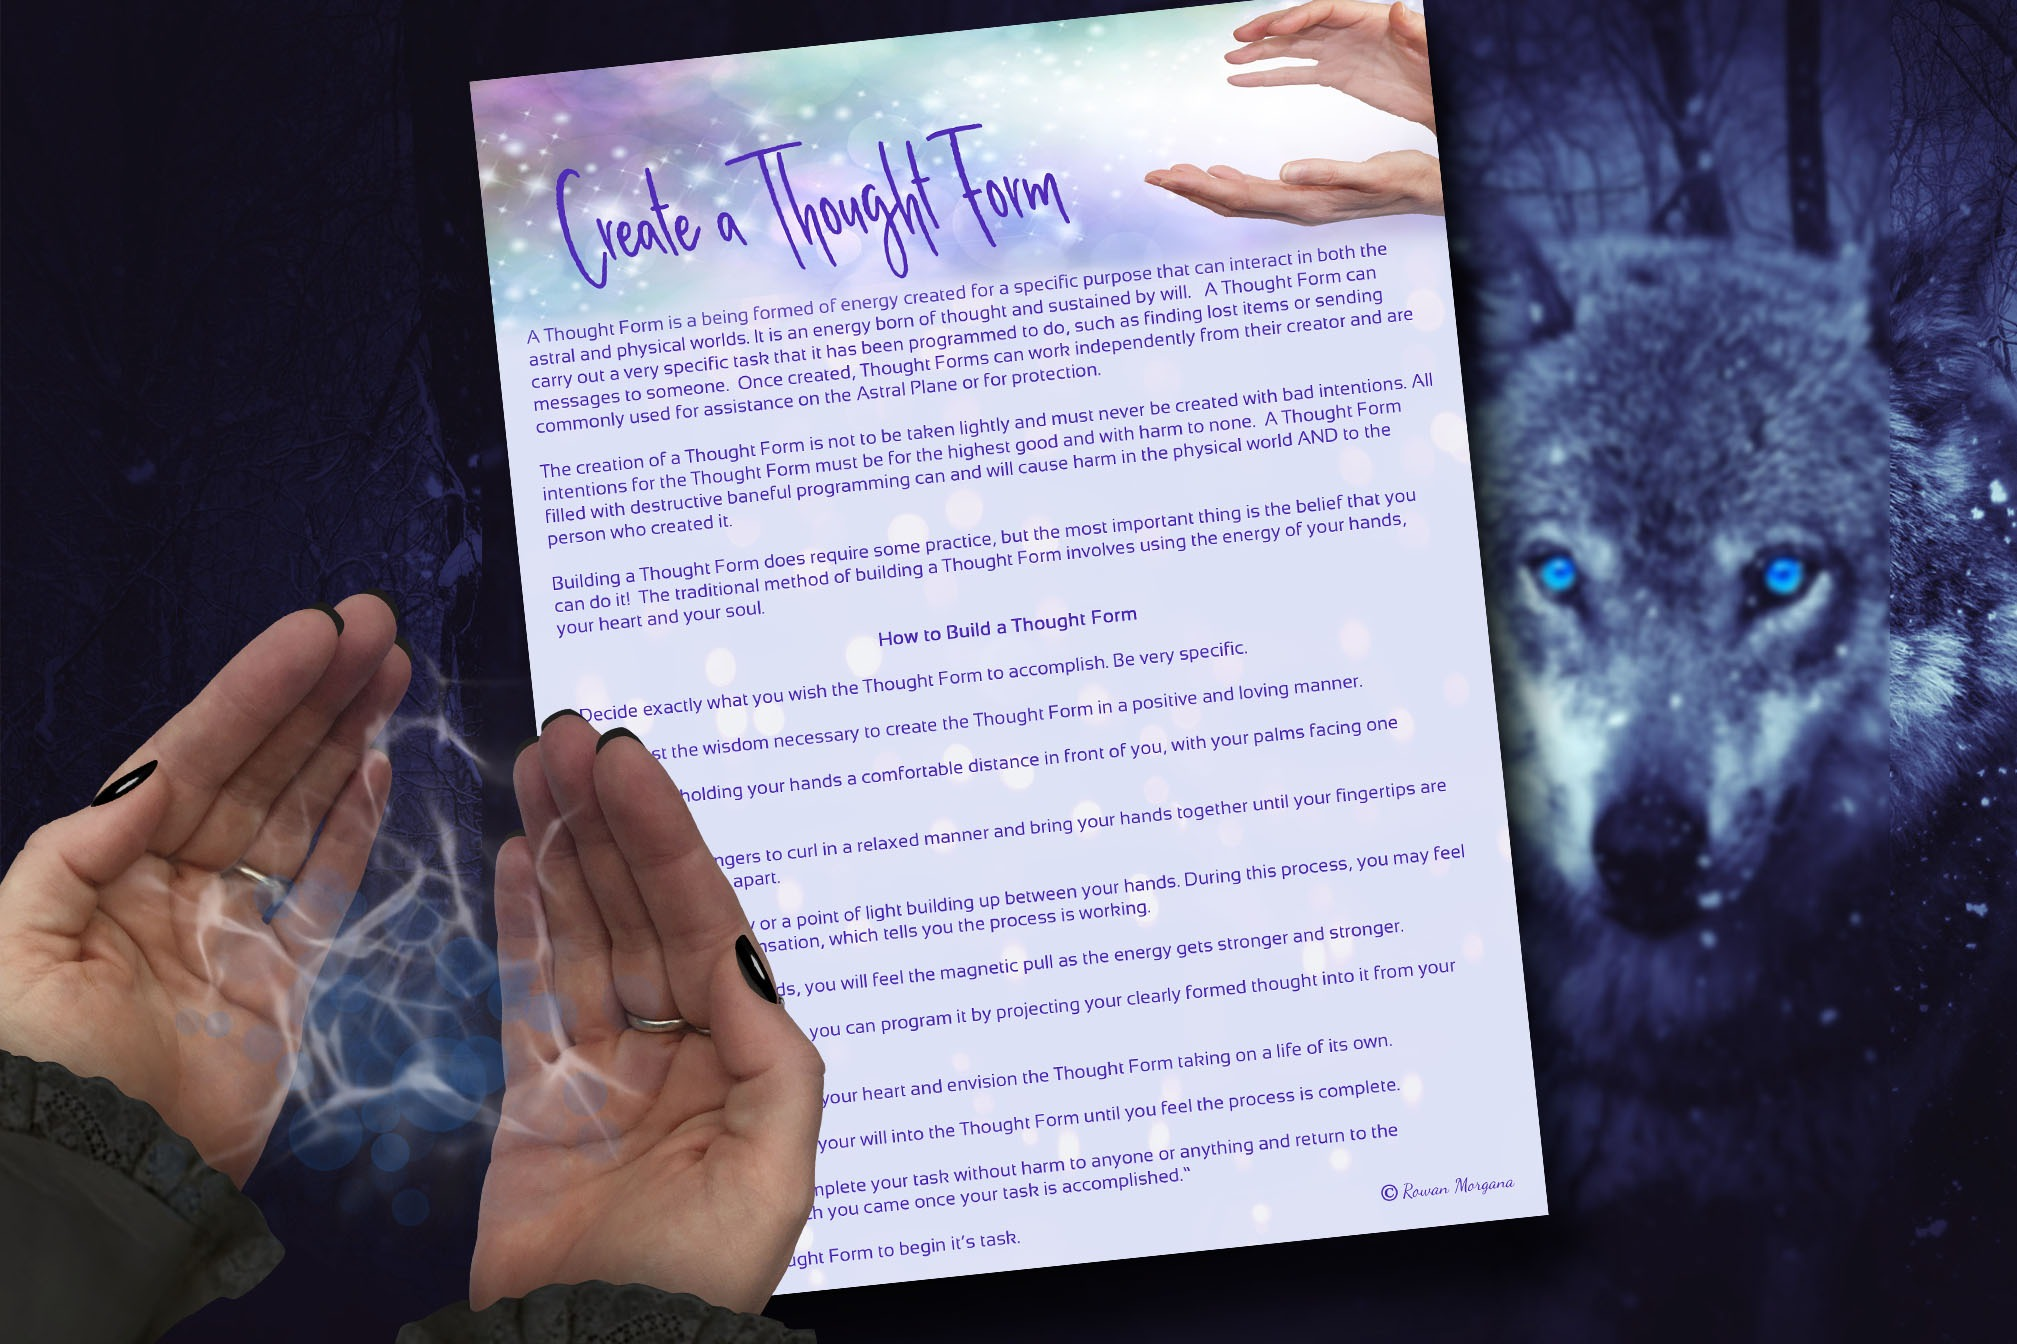 CREATE a THOUGHT FORM - How To